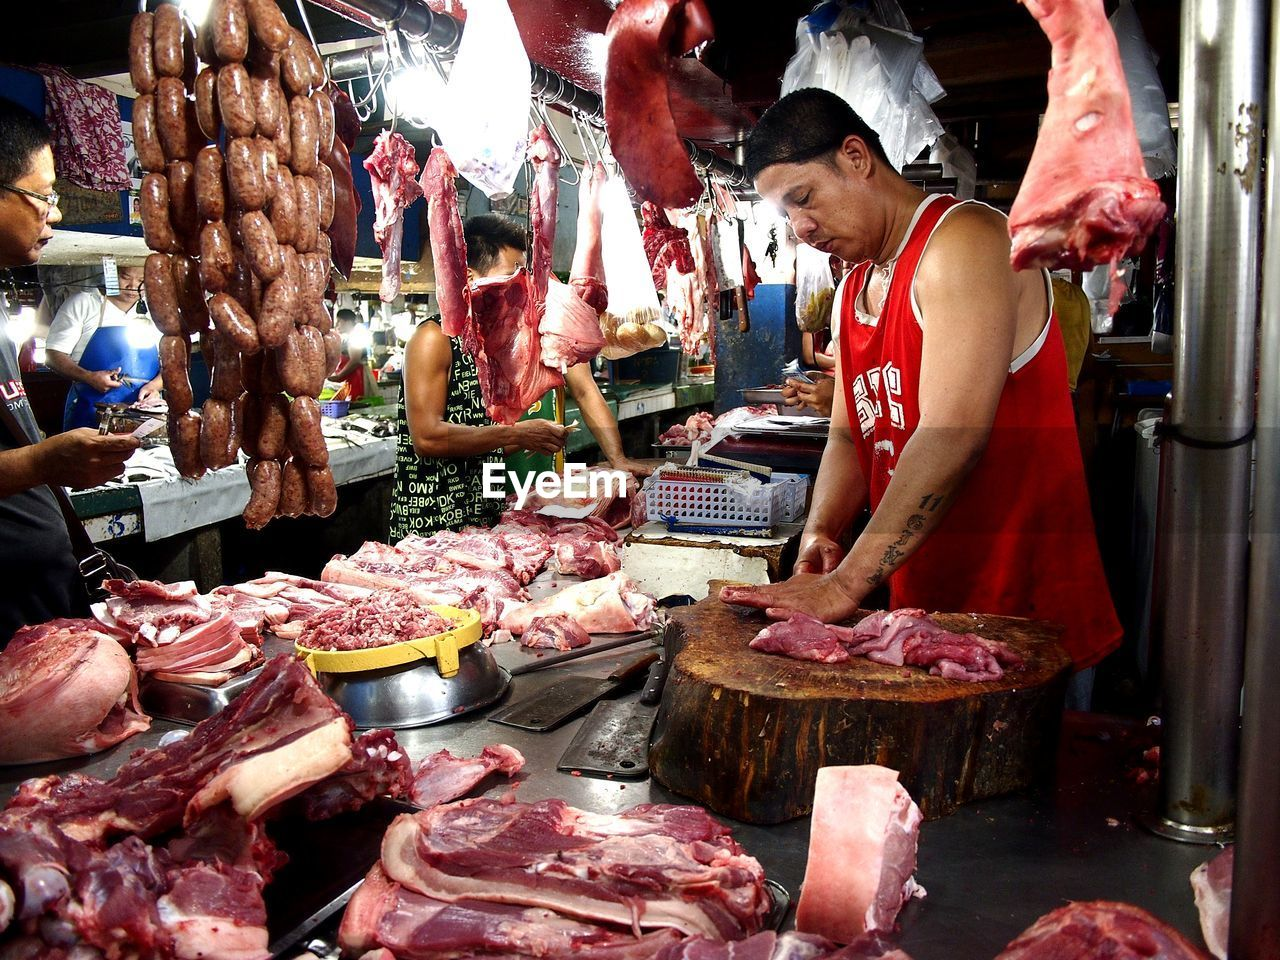 meat, market, retail, food and drink, freshness, food, choice, business, occupation, market stall, for sale, variation, butcher, real people, people, group of people, preparation, raw food, small business, men, buying, fish market, sale, consumerism, retail display